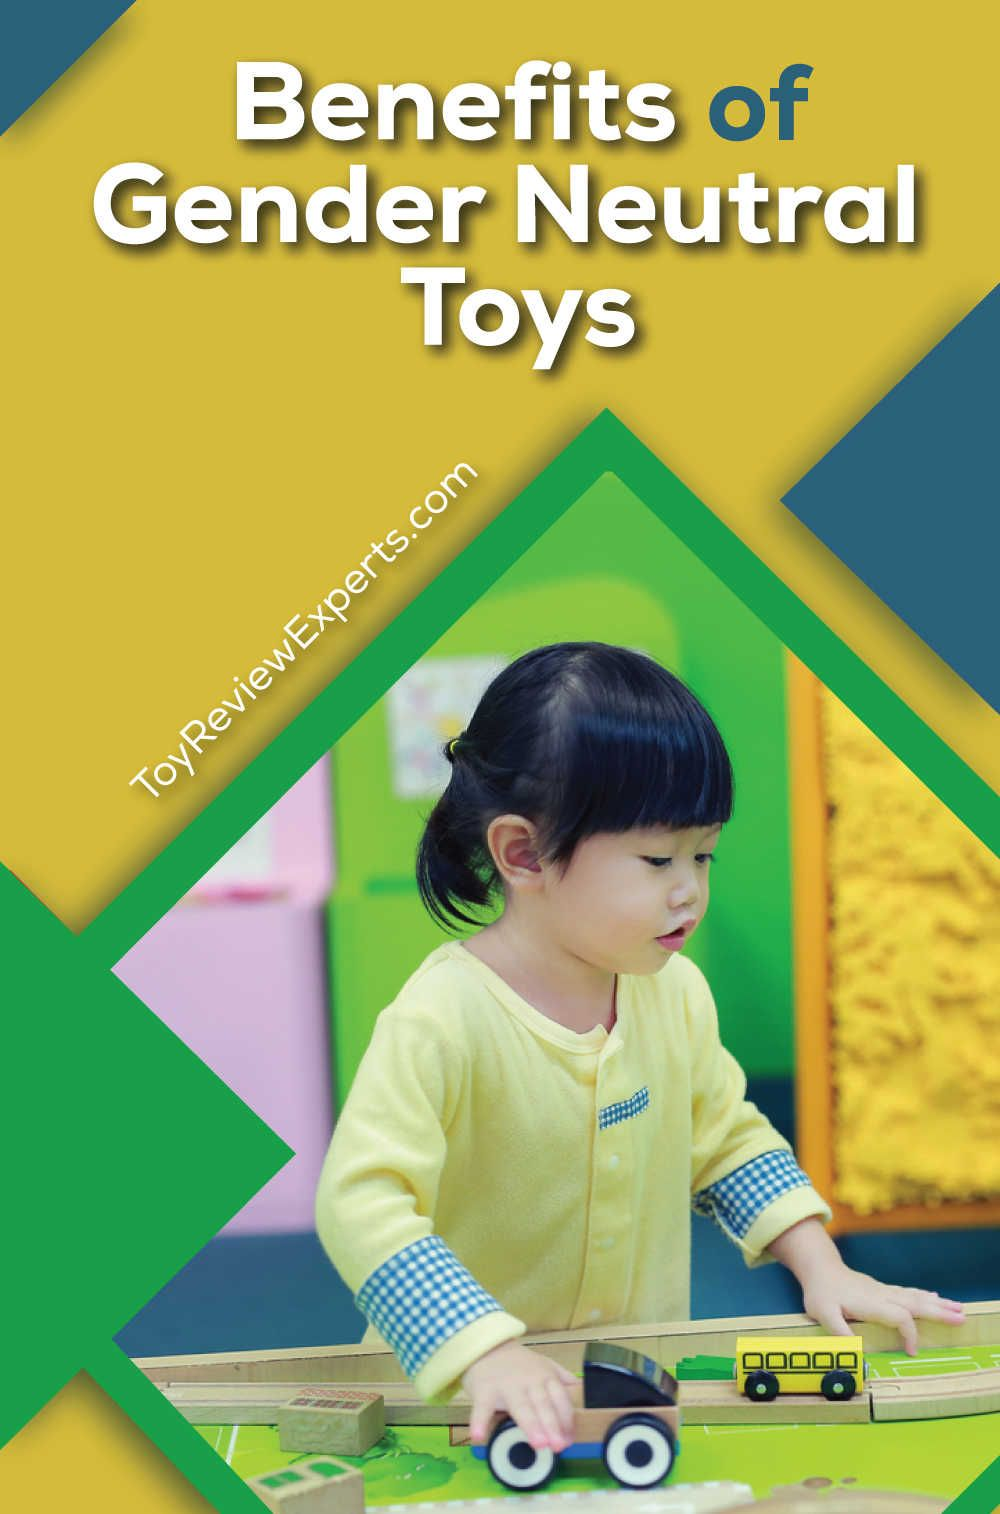 Gender Neutral Toys How They Empower Our Kids Toy Review Experts Gender Neutral Toys Gender Neutral Kids